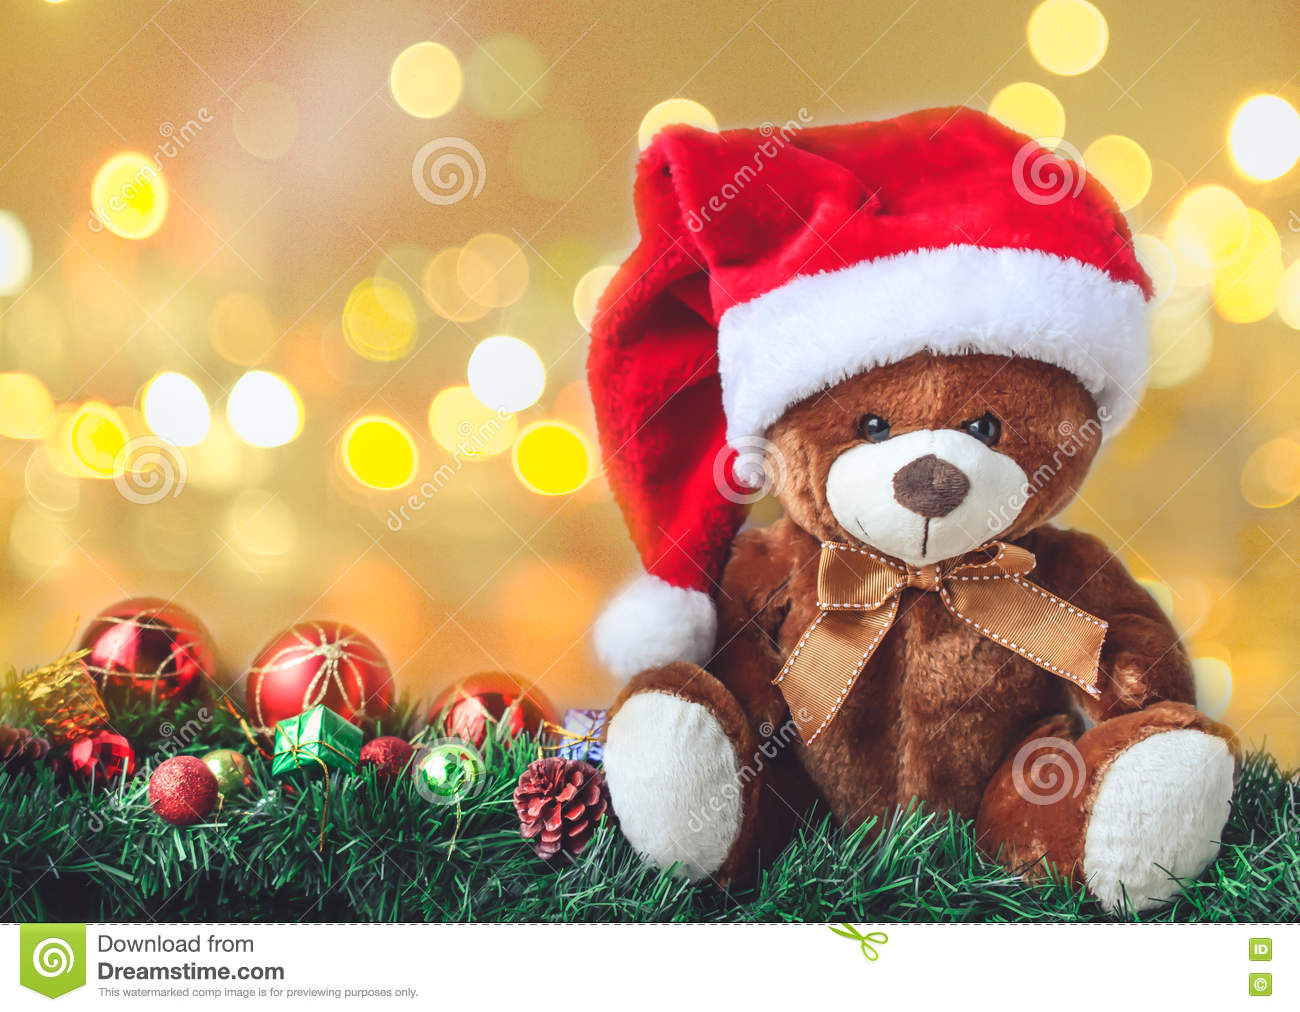 Teddy Weihnachten.Teddy Bear In Christmas With Ball And Gift Box In Blur Backgroun